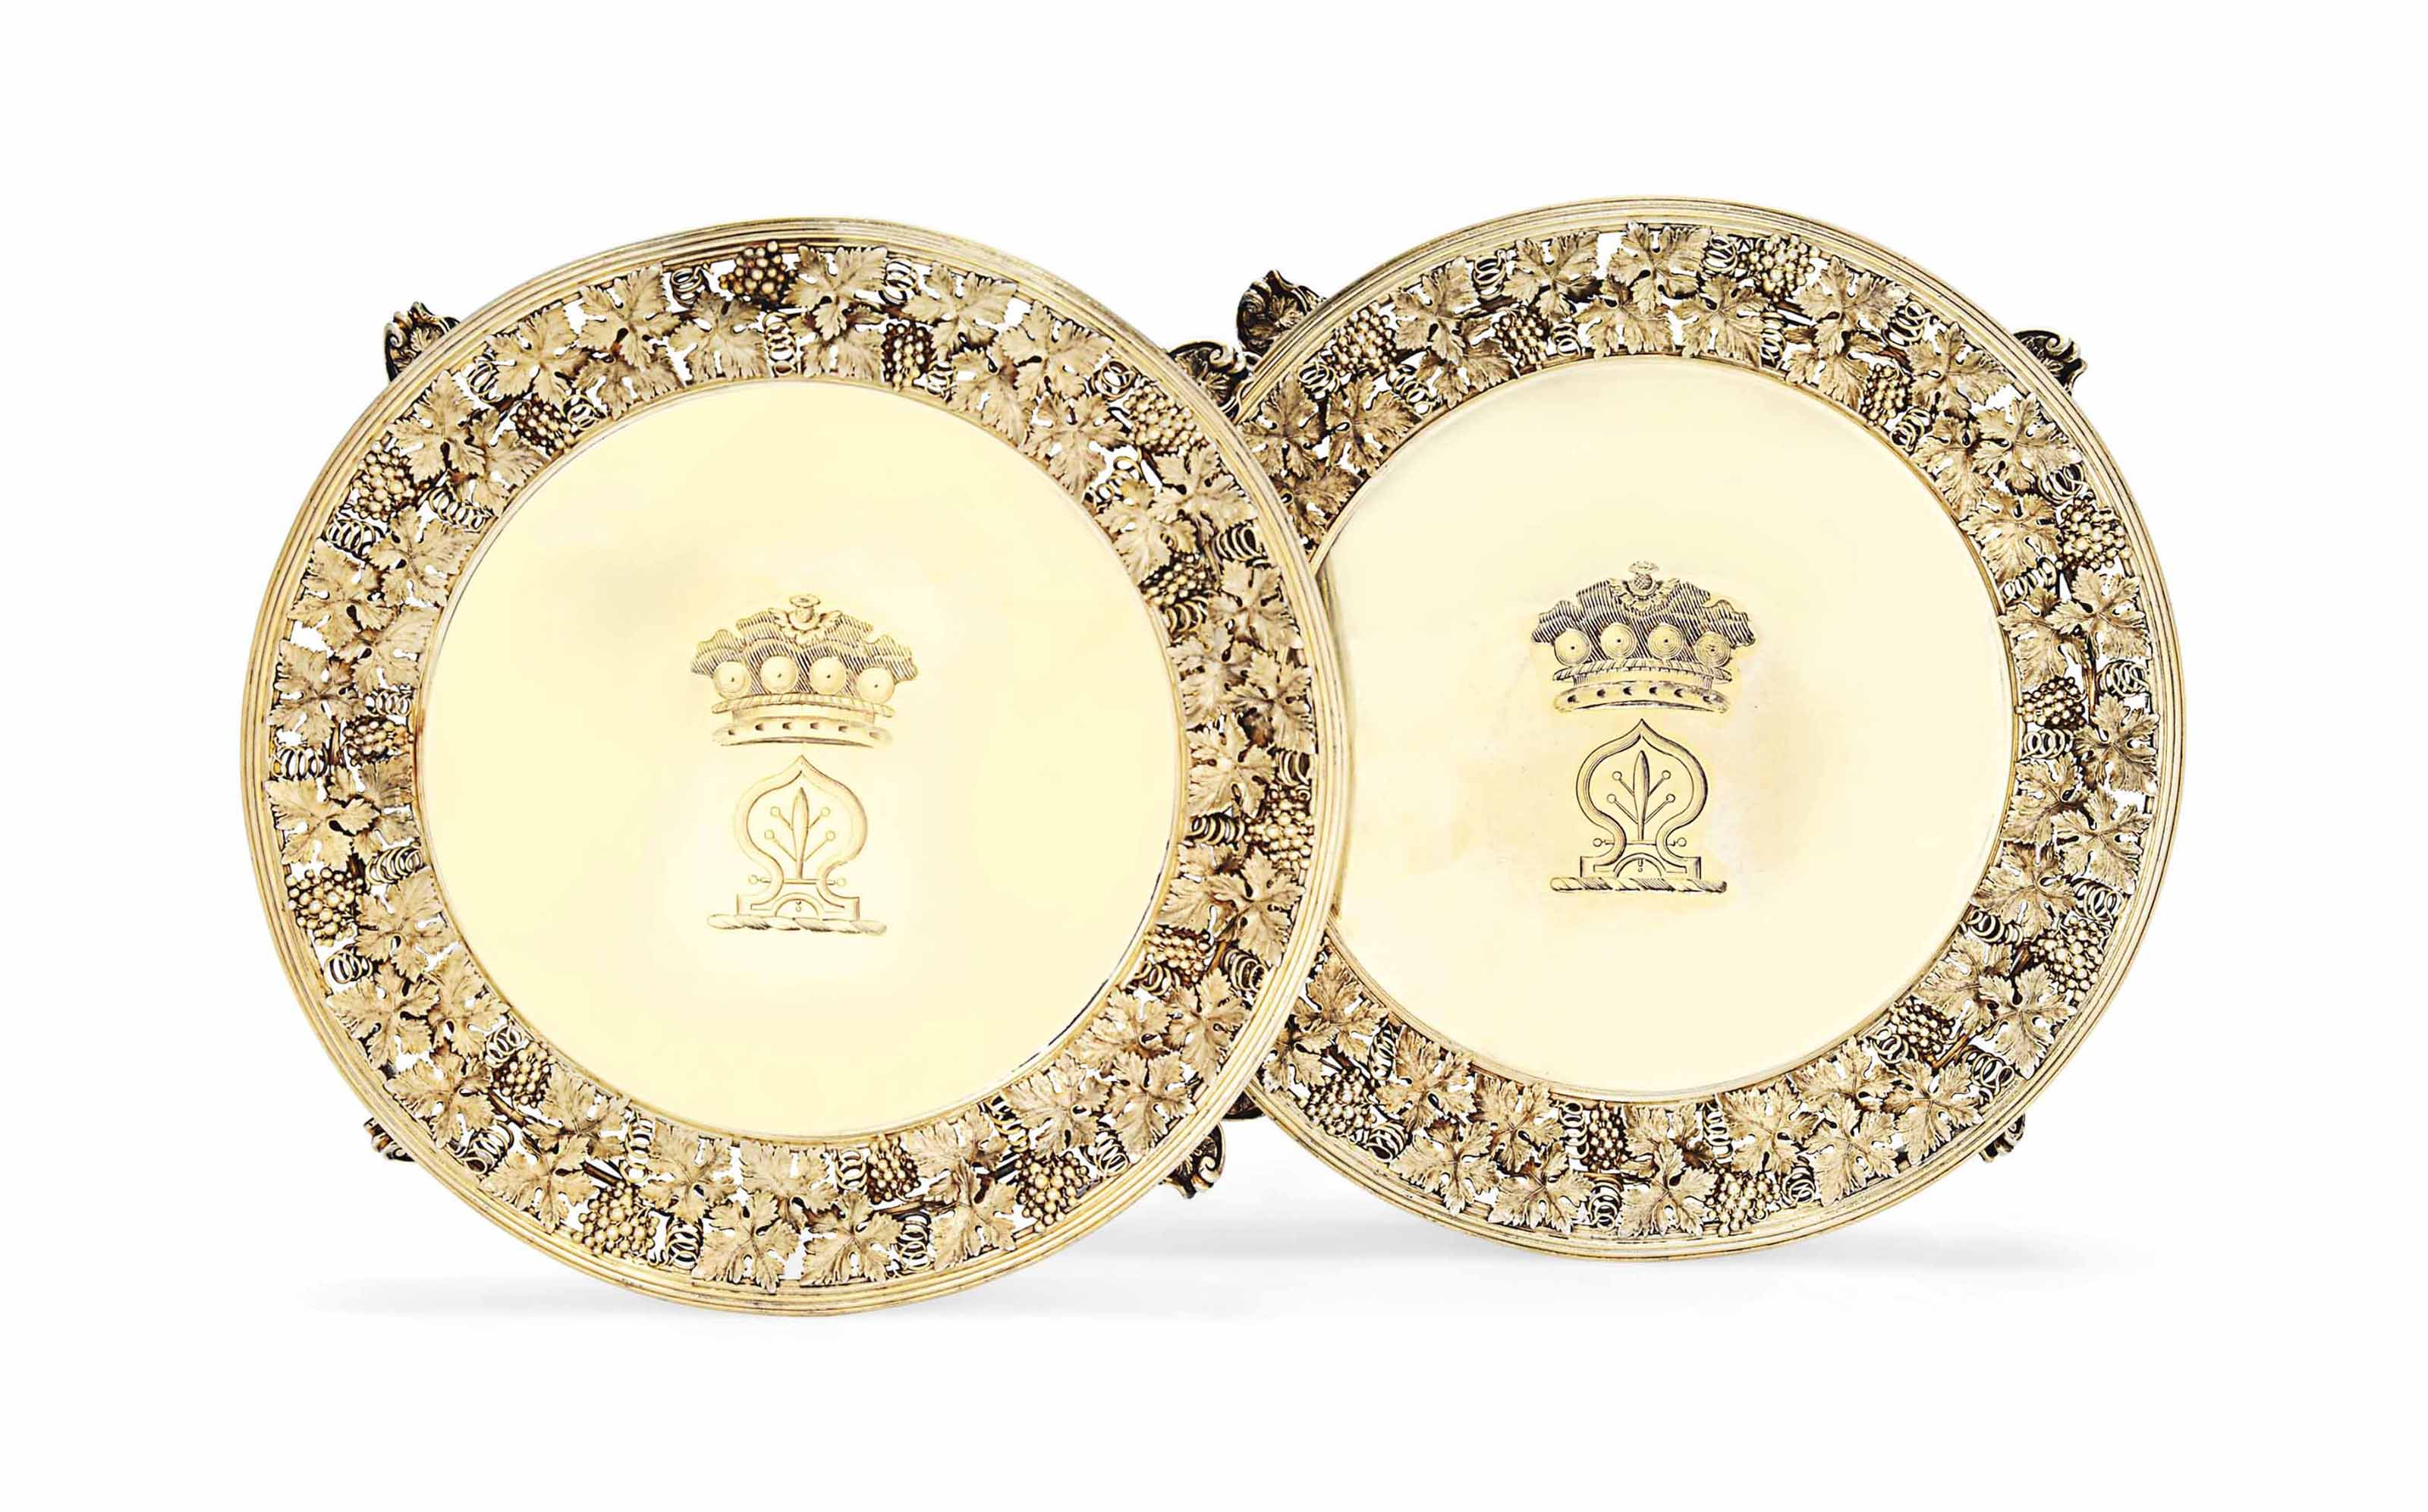 A PAIR OF WILLIAM IV SILVER-GI